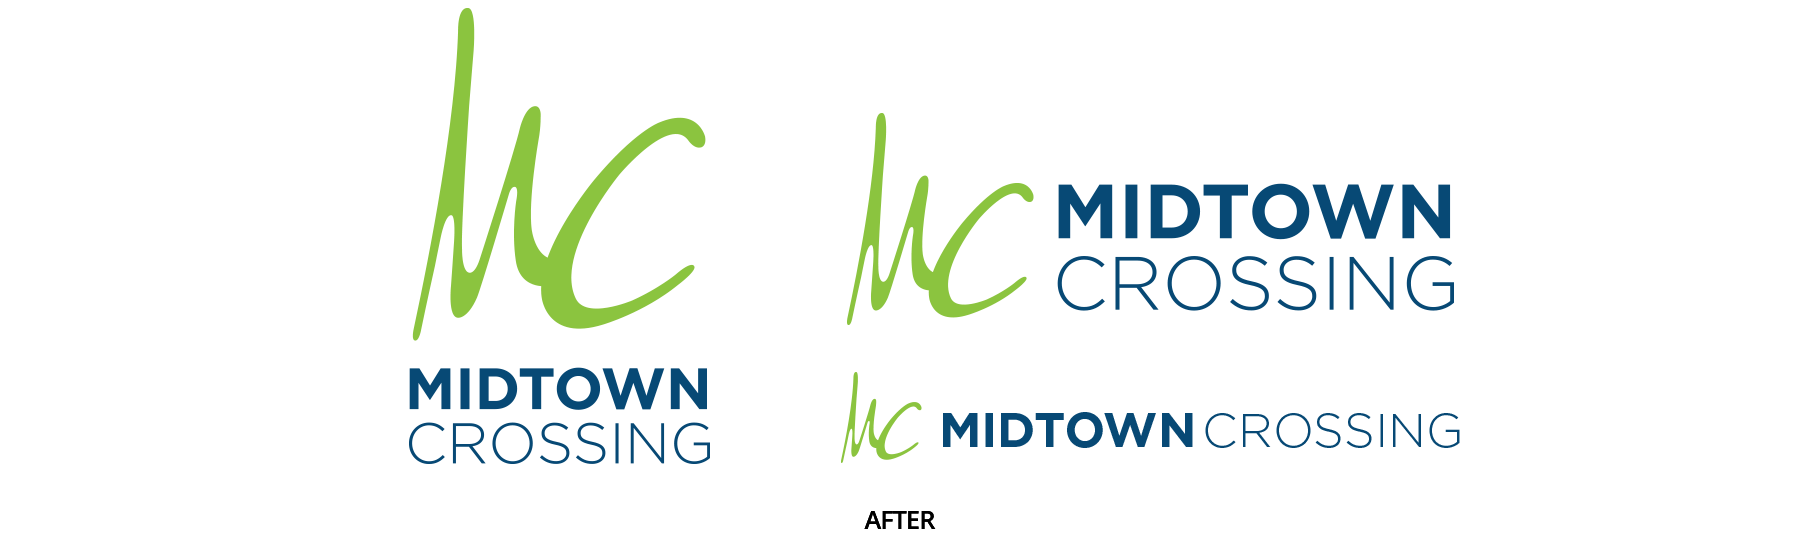 Midtown Crossing After